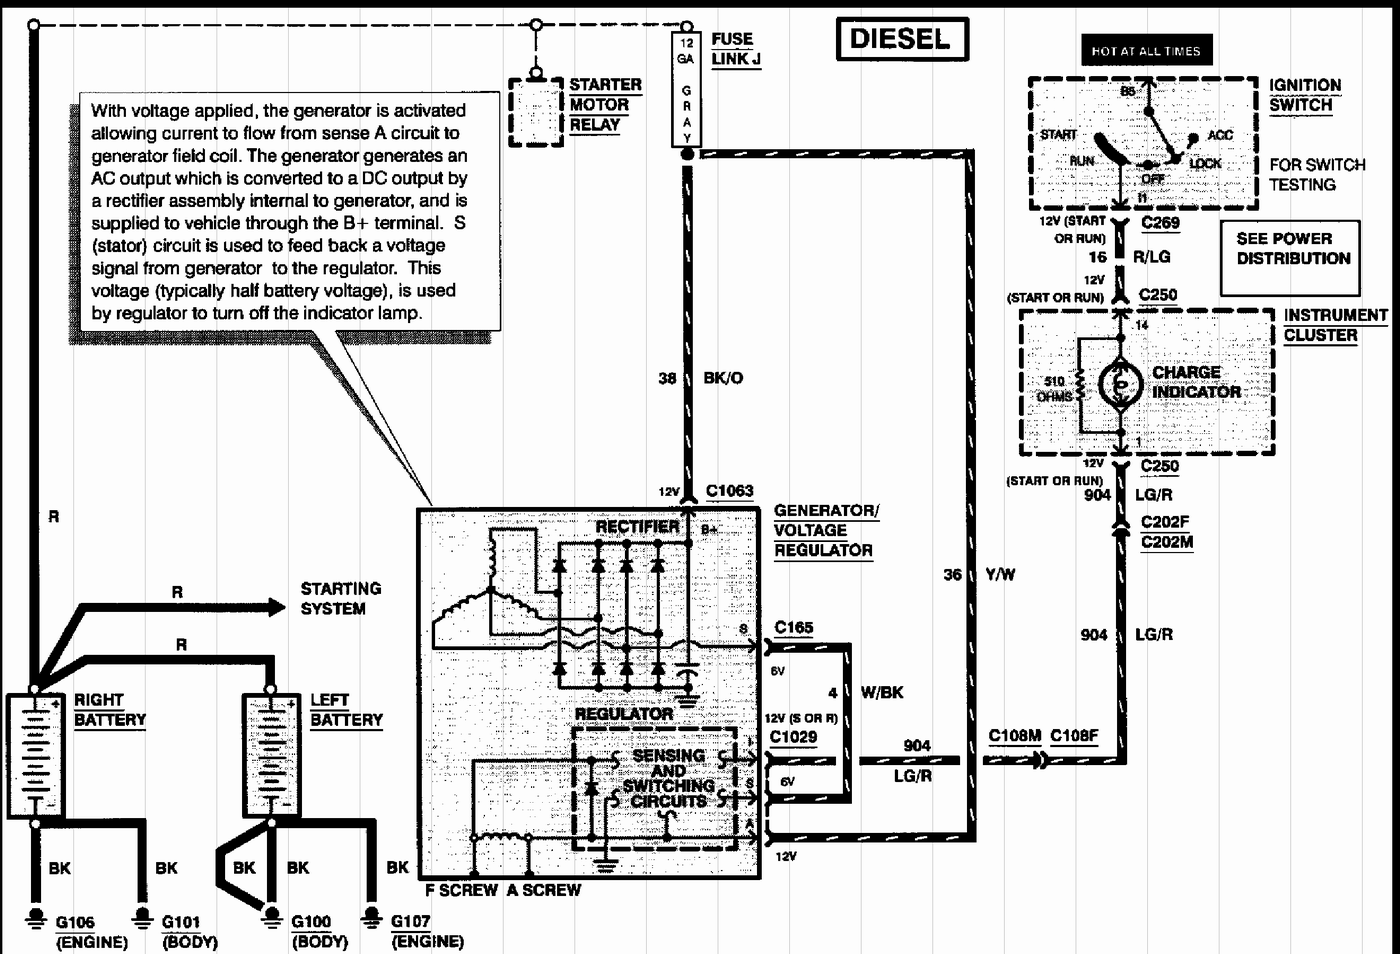 I need a wiring diagram for a 97 F350 7.3 Powerstroke with ...